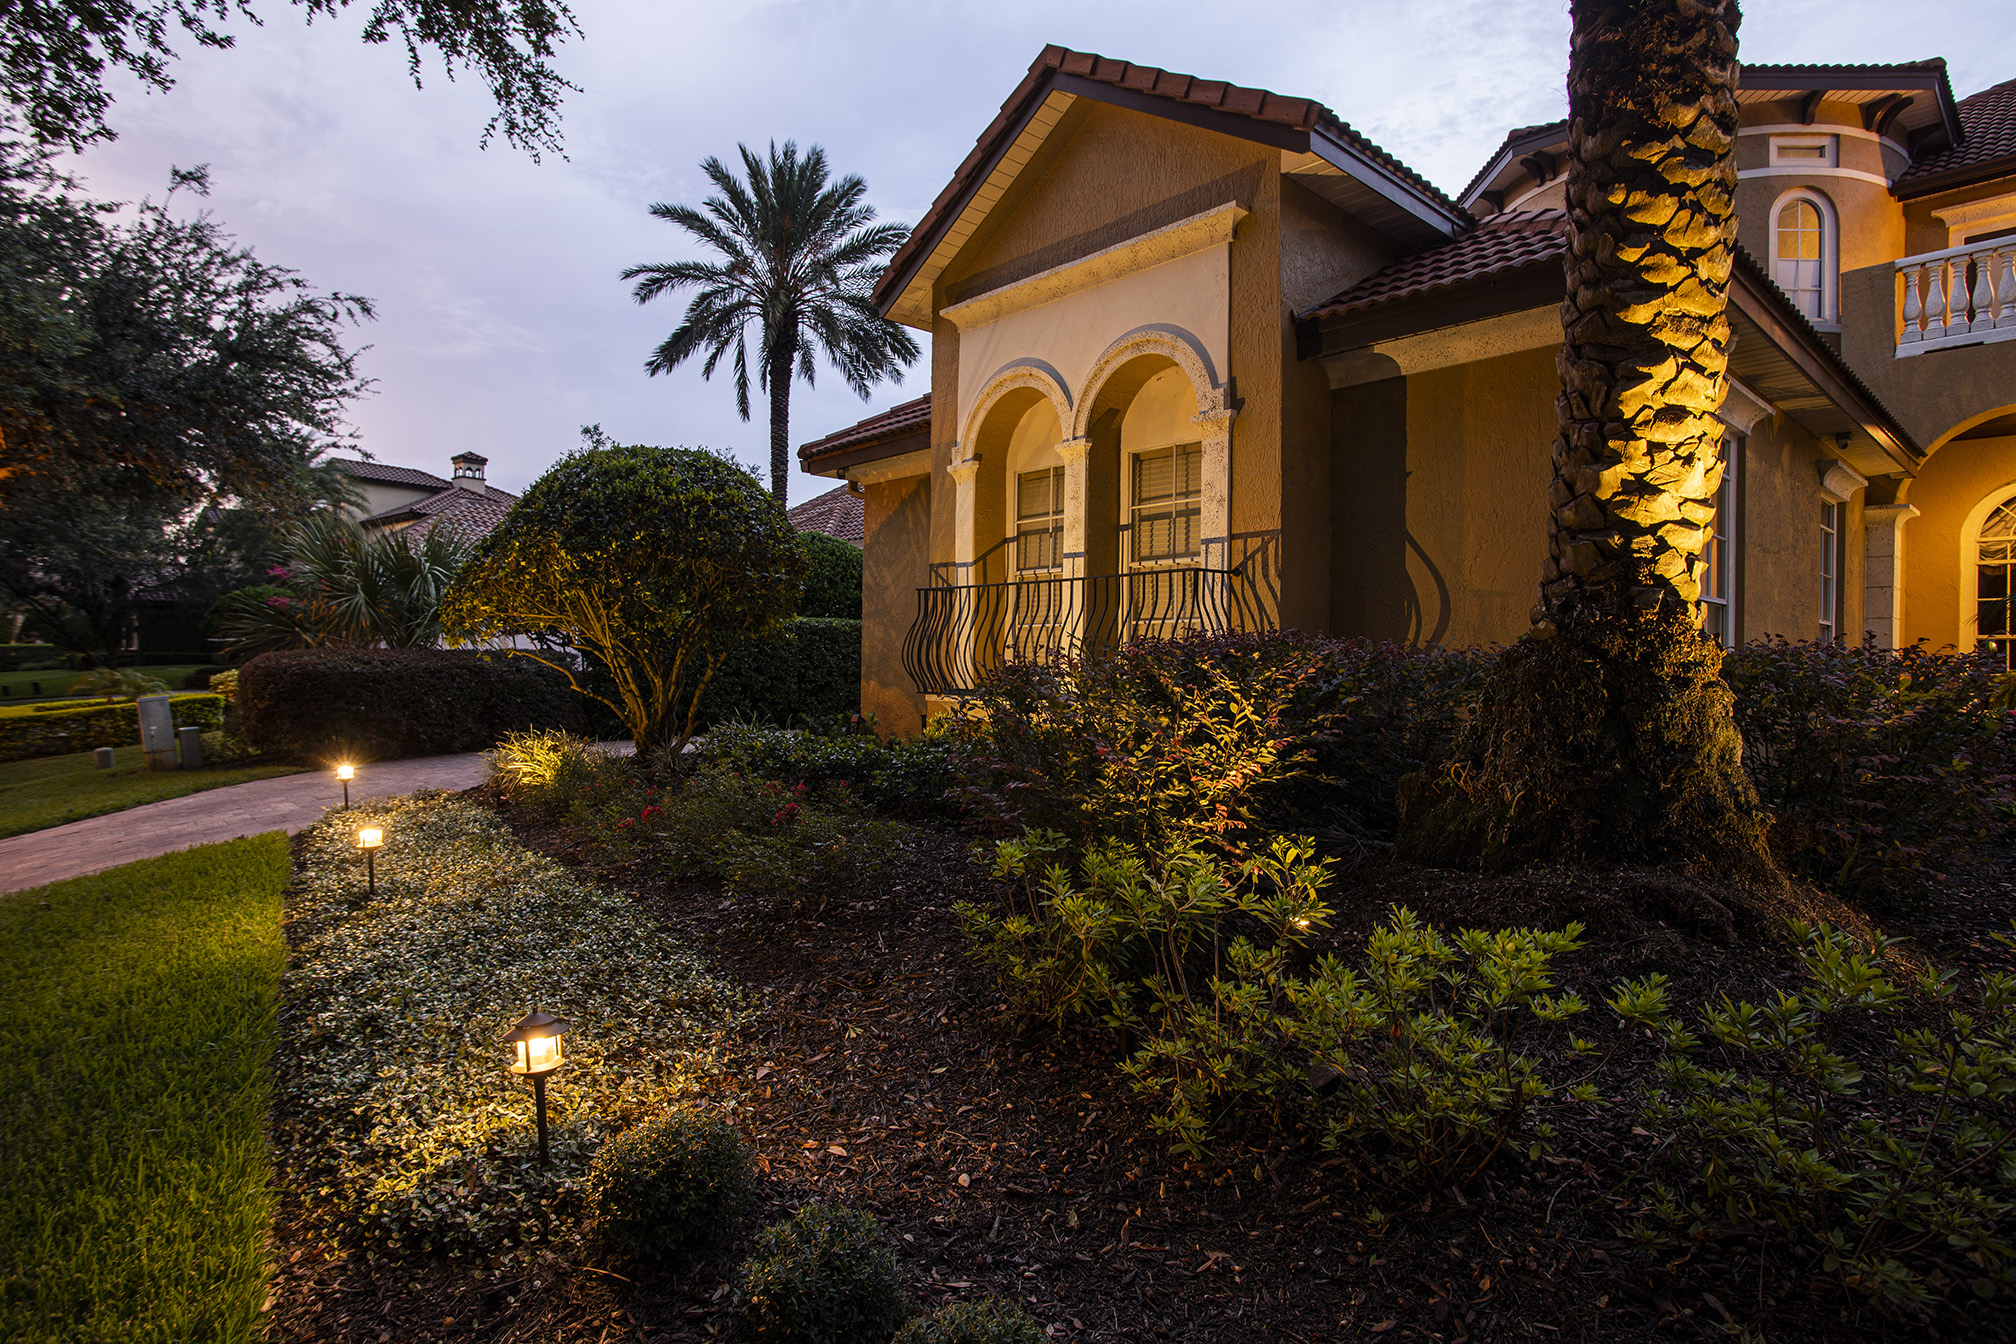 Landscape lighting for walkways, driveways and garden beds